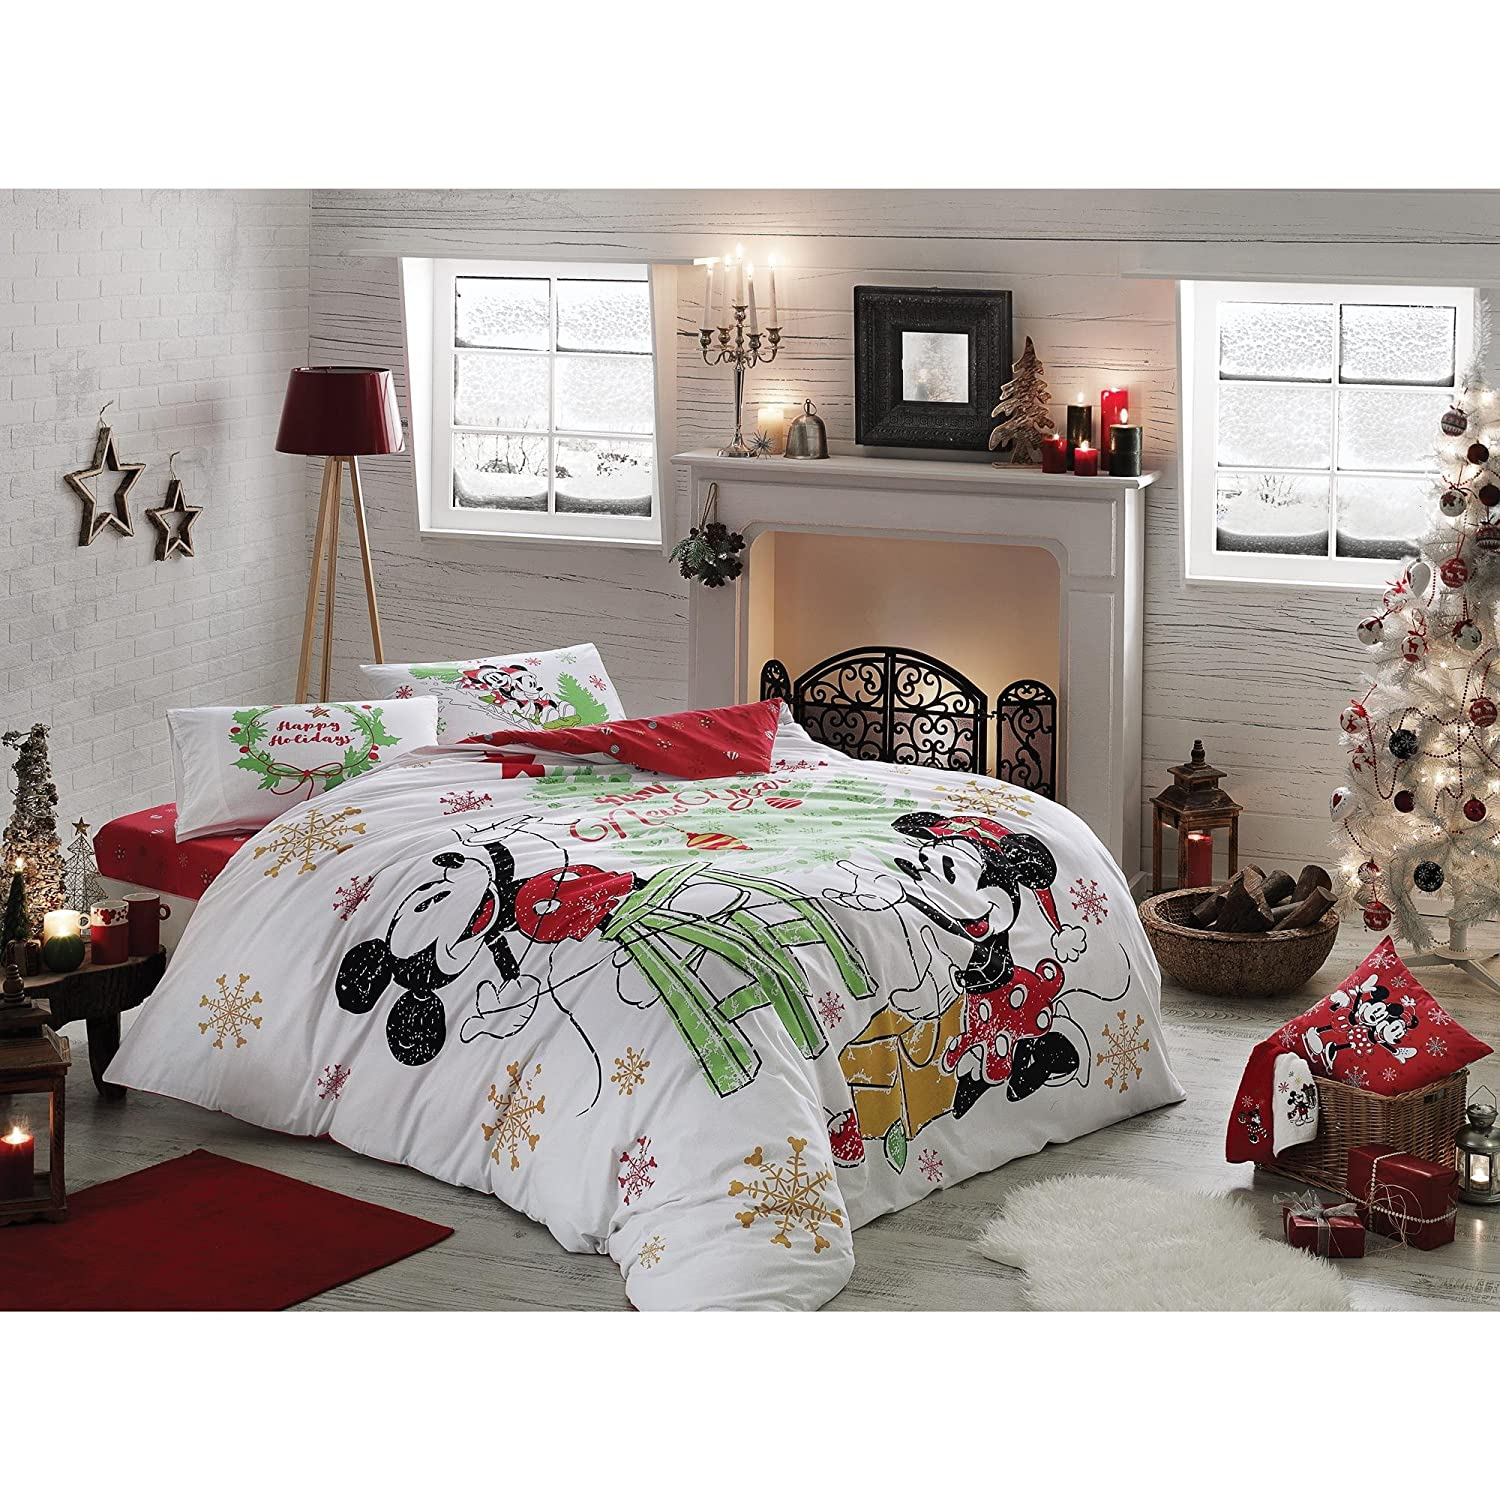 Disney Mickey Minnie Happy New Year 100% Cotton Full/Double Size 4 Pieces Bedding Set, Quilt/Duvet Cover Set with Duvet Cover, Fitted Sheet and 2 Pillow Cases… TAC 60174614